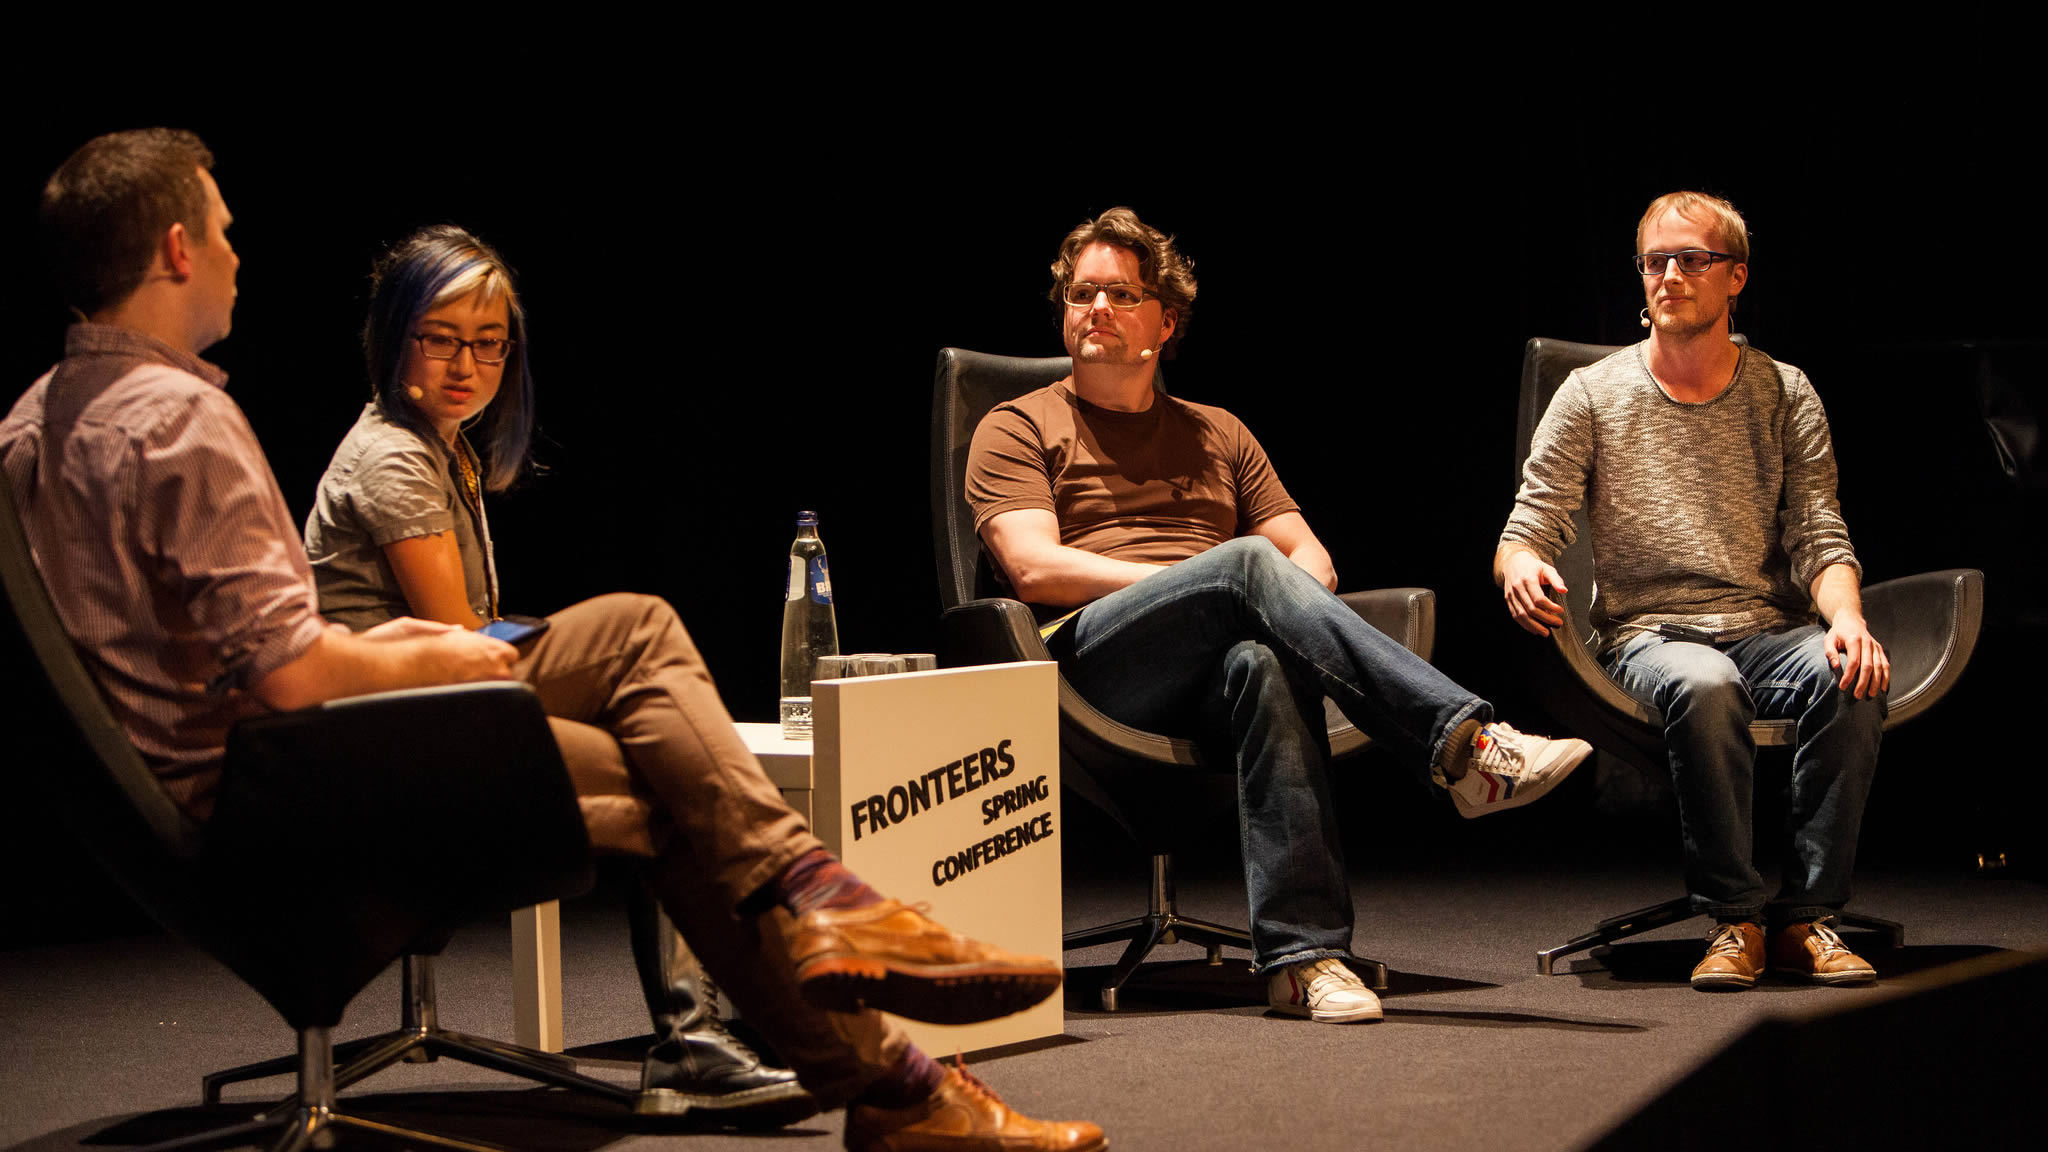 Panel discussion about Technical Performance - Hawksworth, Zhu, Bakaus, Bynens. Photo by Peter Peerdeman